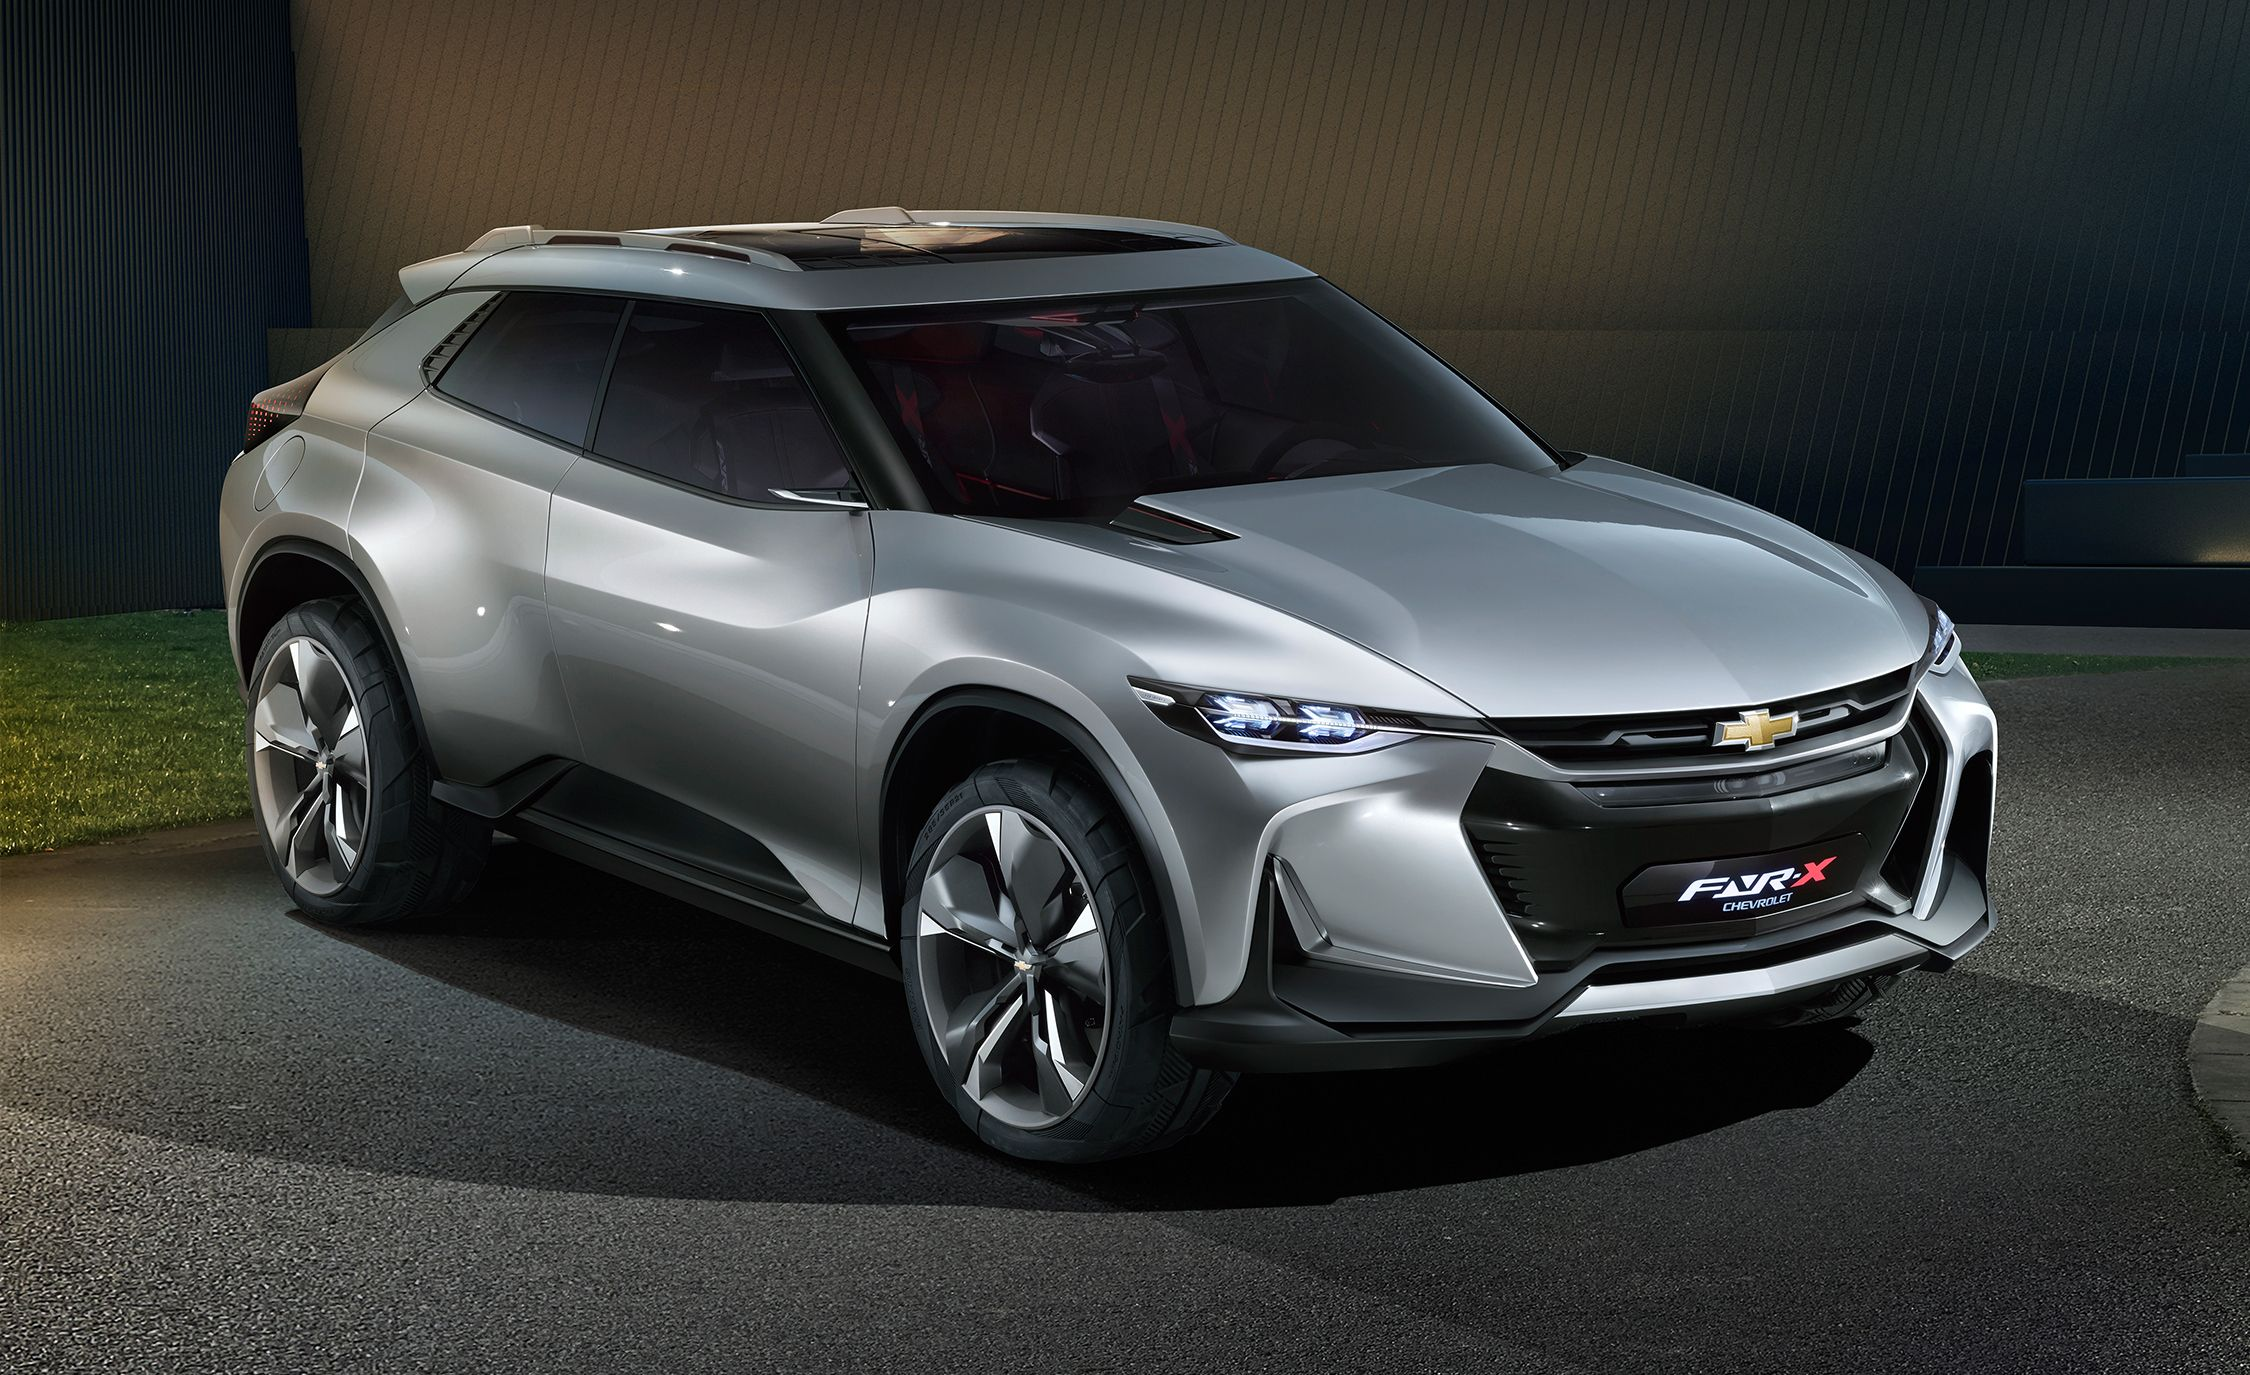 Chevy fnr concept price